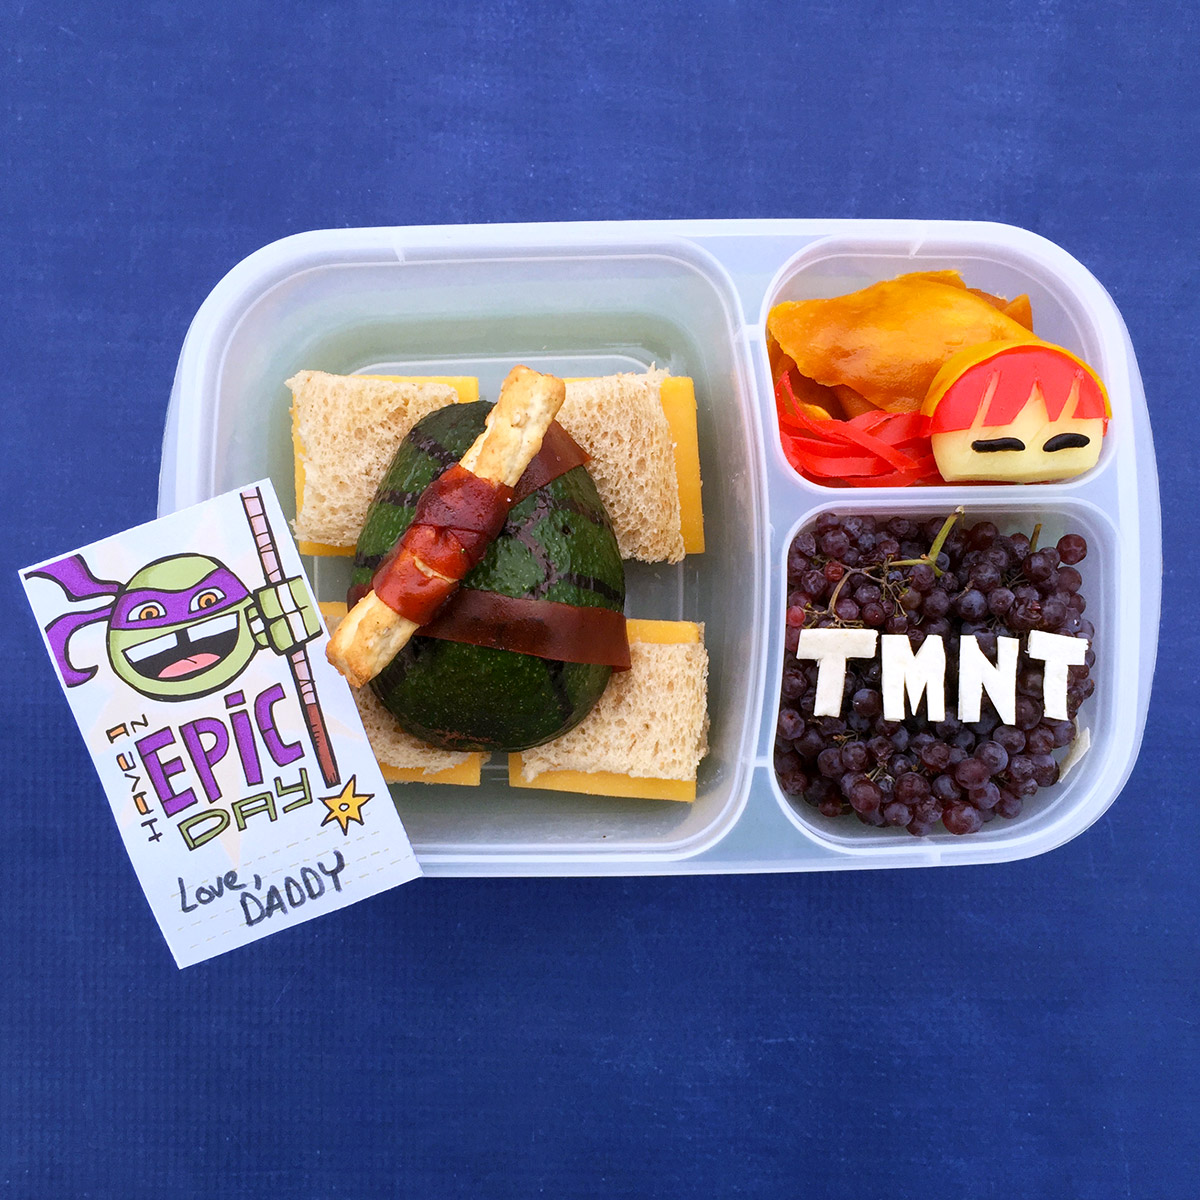 TMNT Bento-style Donnie and April Lunch Recipe